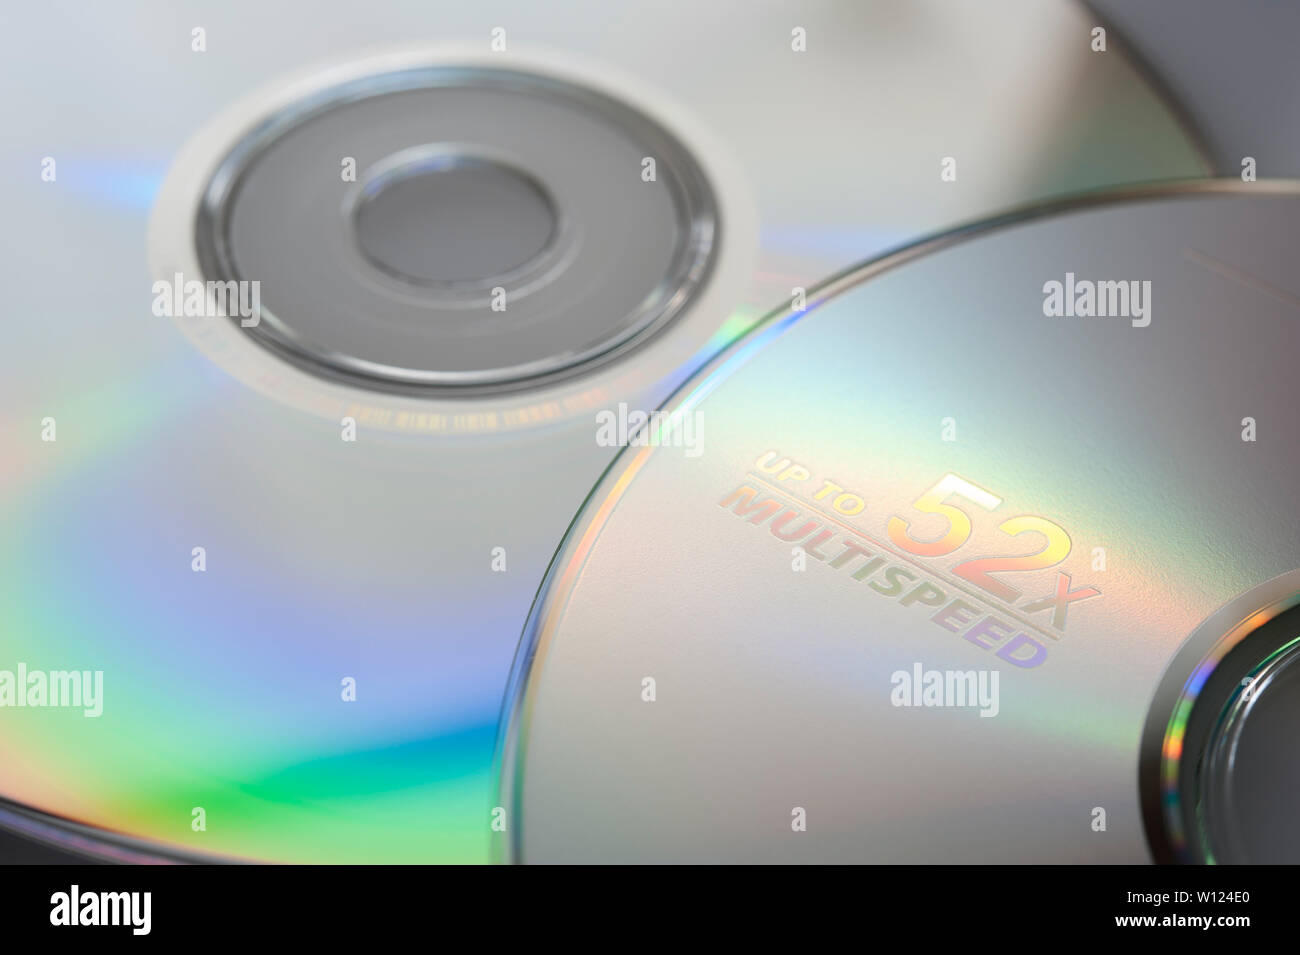 CD/DVD texture background - Stock Image